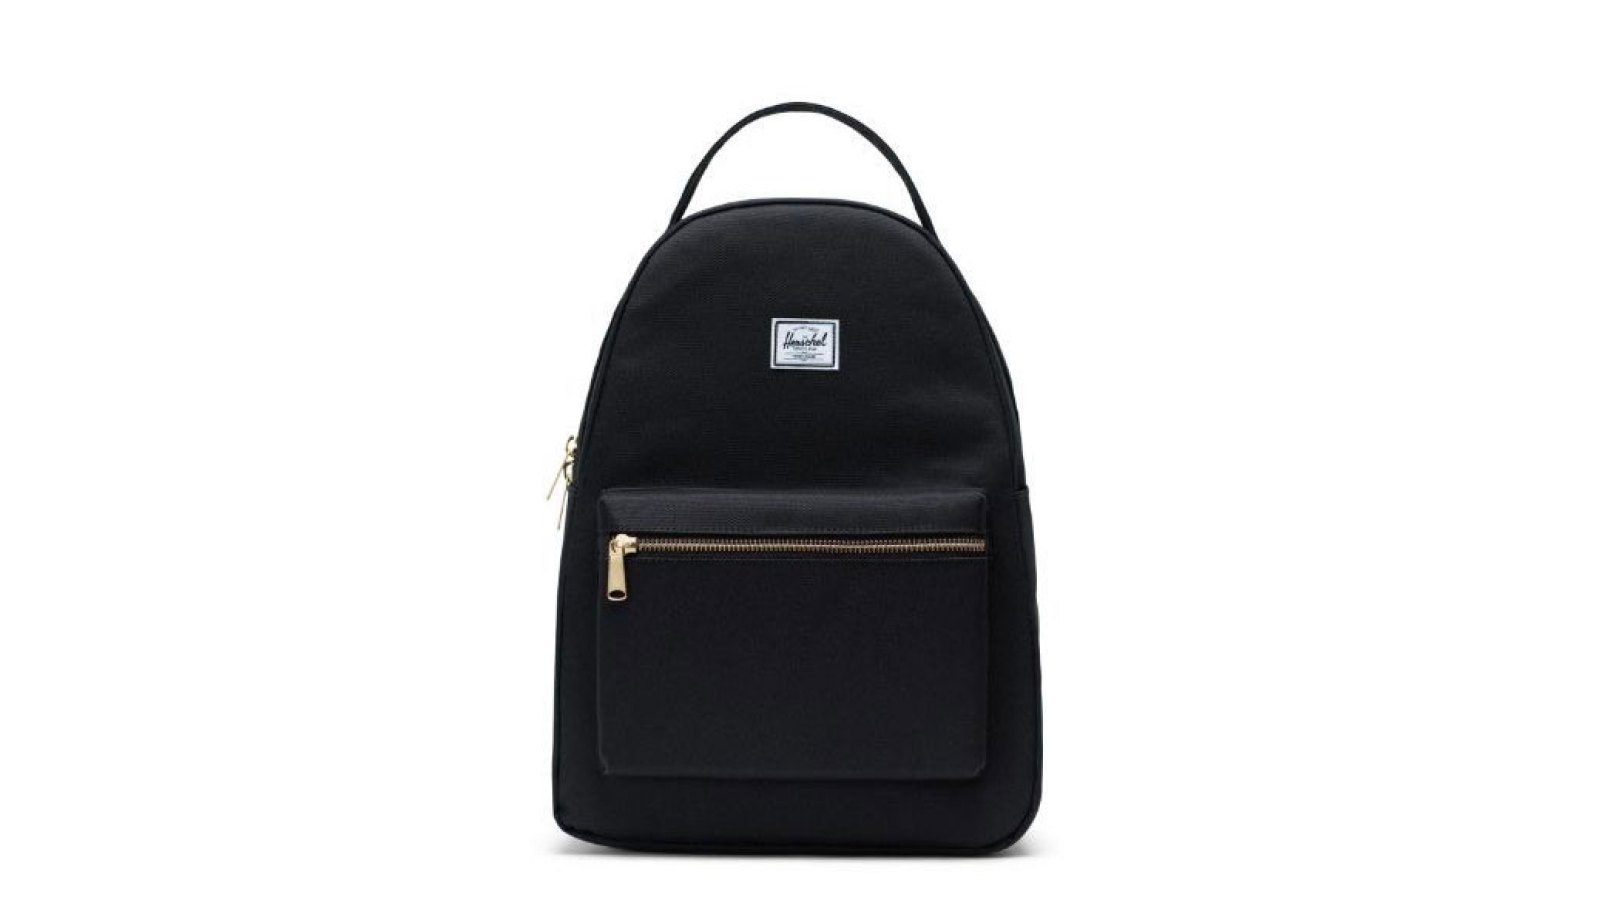 877dc847a6c5 Chic Essentials  Herschel Backpacks Are the Gift Everyone Wants